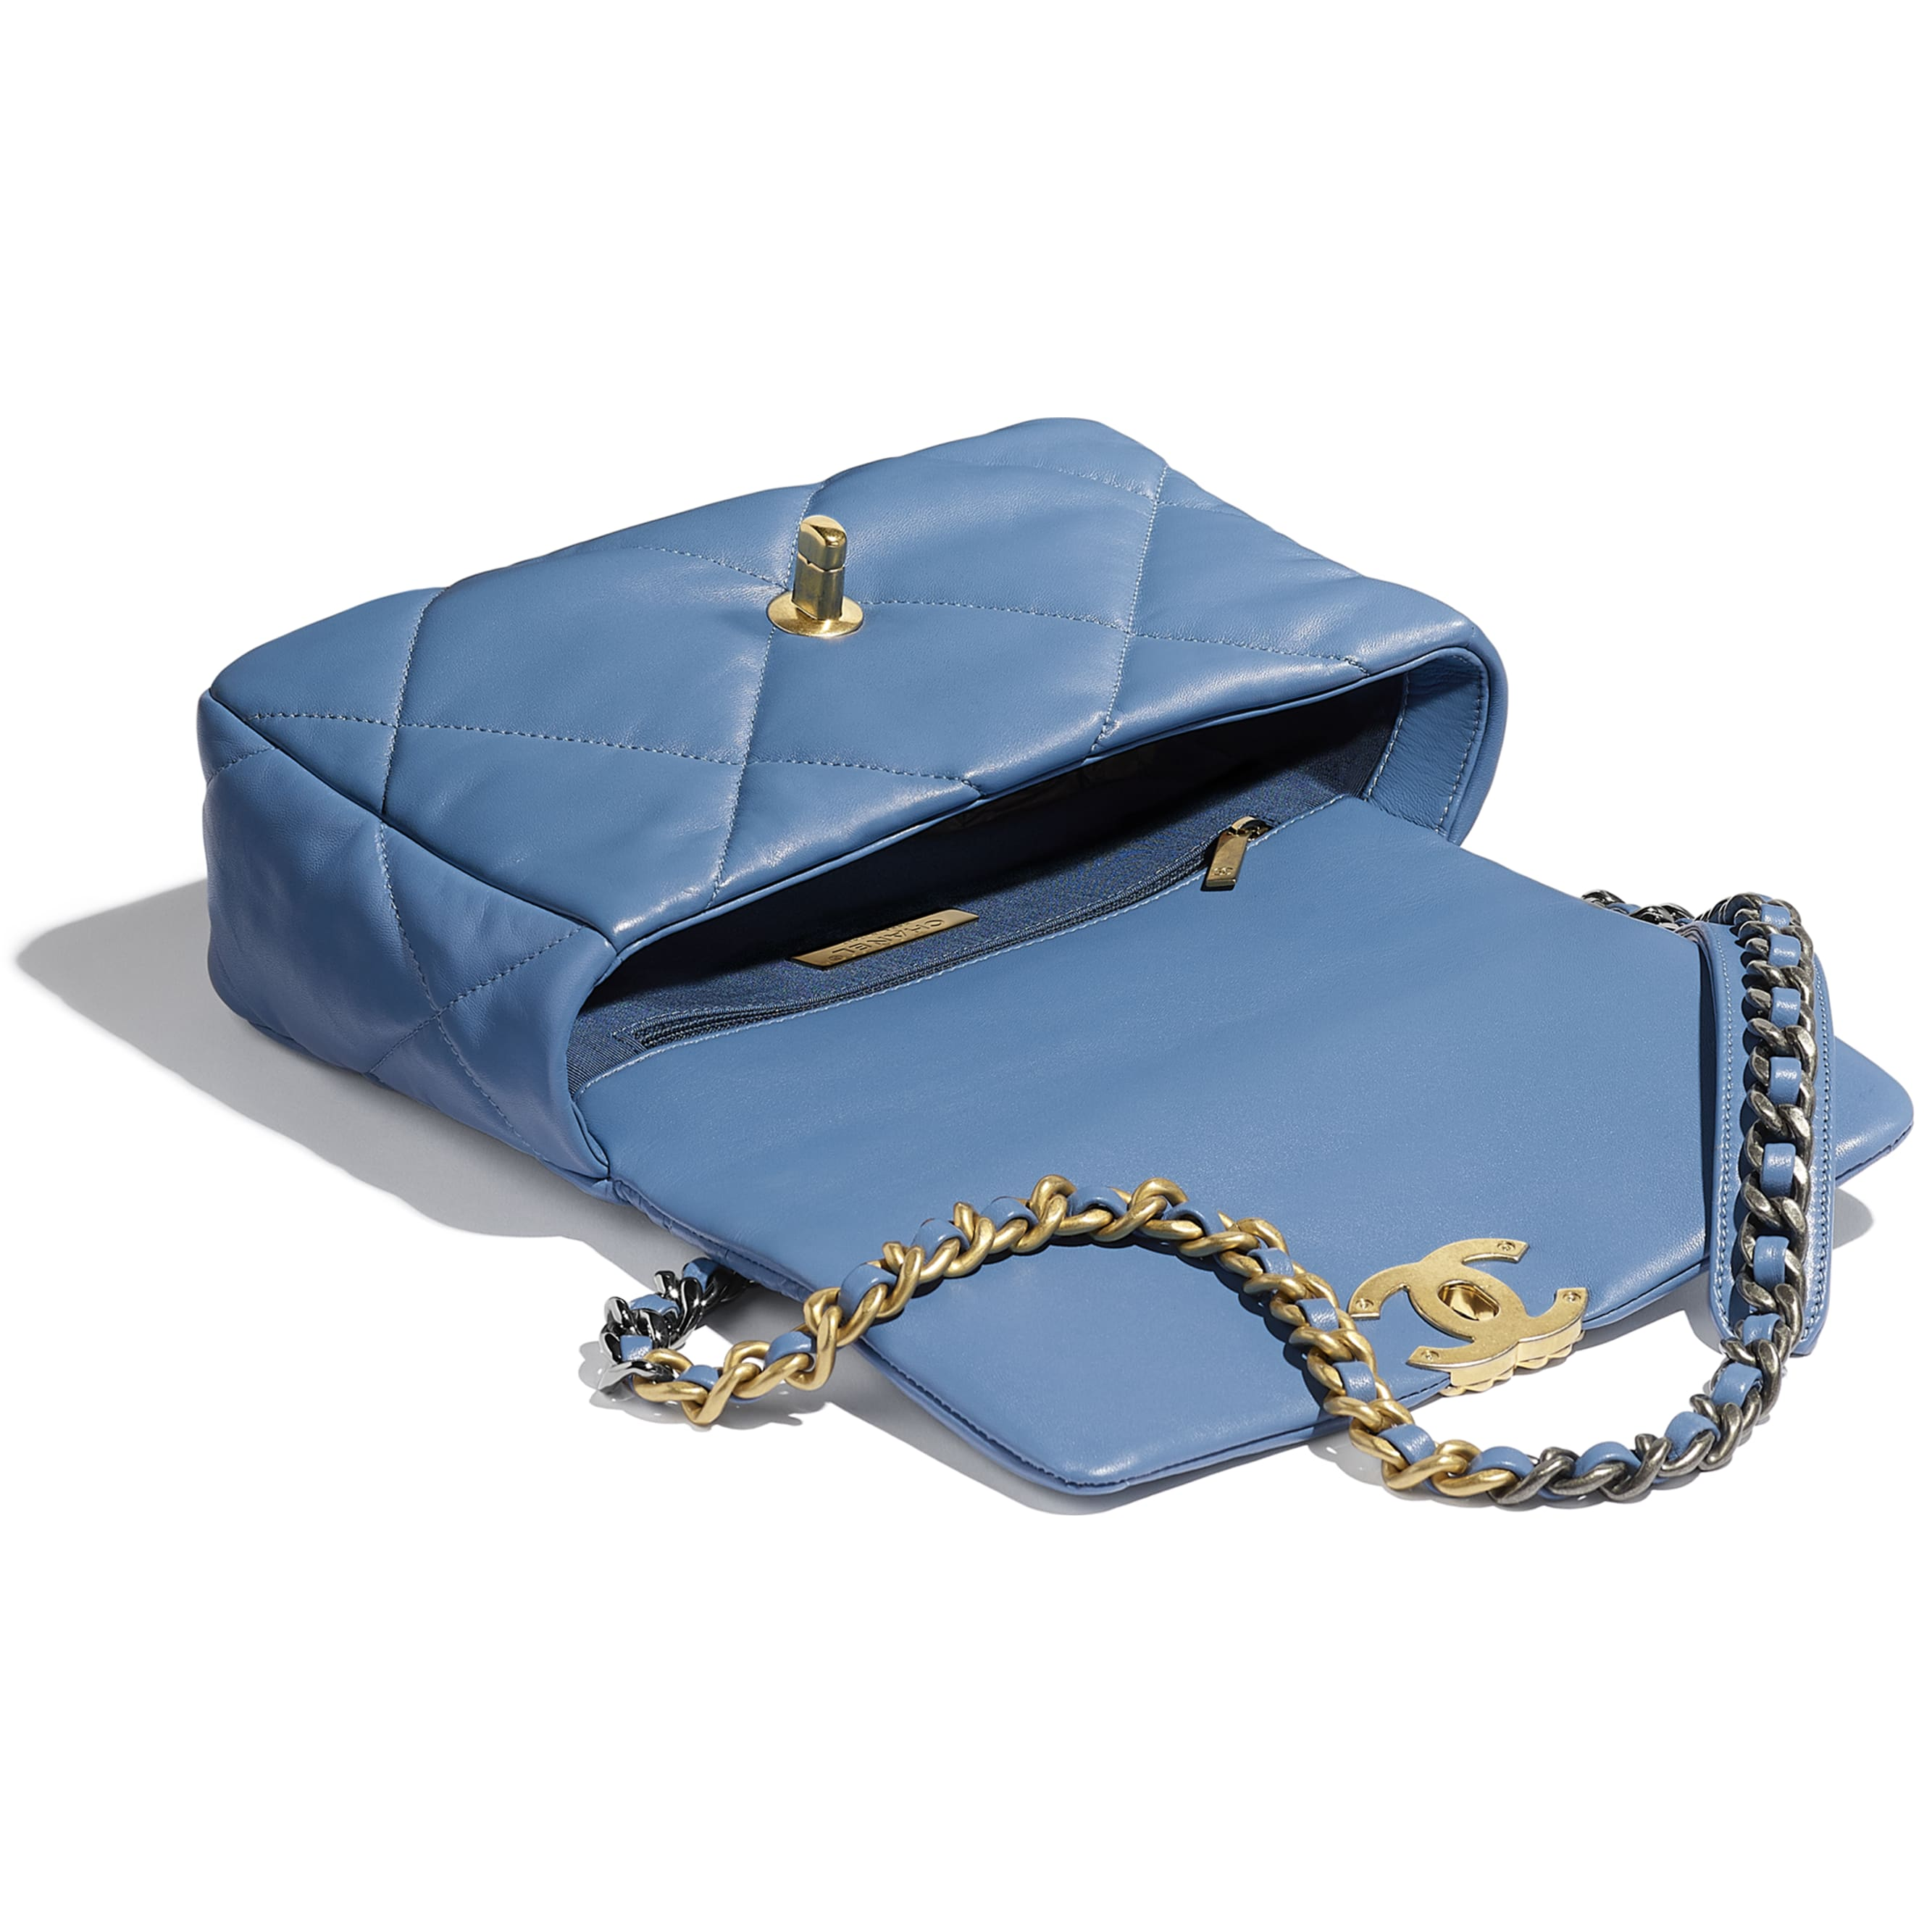 CHANEL 19 Flap Bag - Blue - Lambskin, Gold-Tone, Silver-Tone & Ruthenium-Finish Metal - CHANEL - Other view - see standard sized version